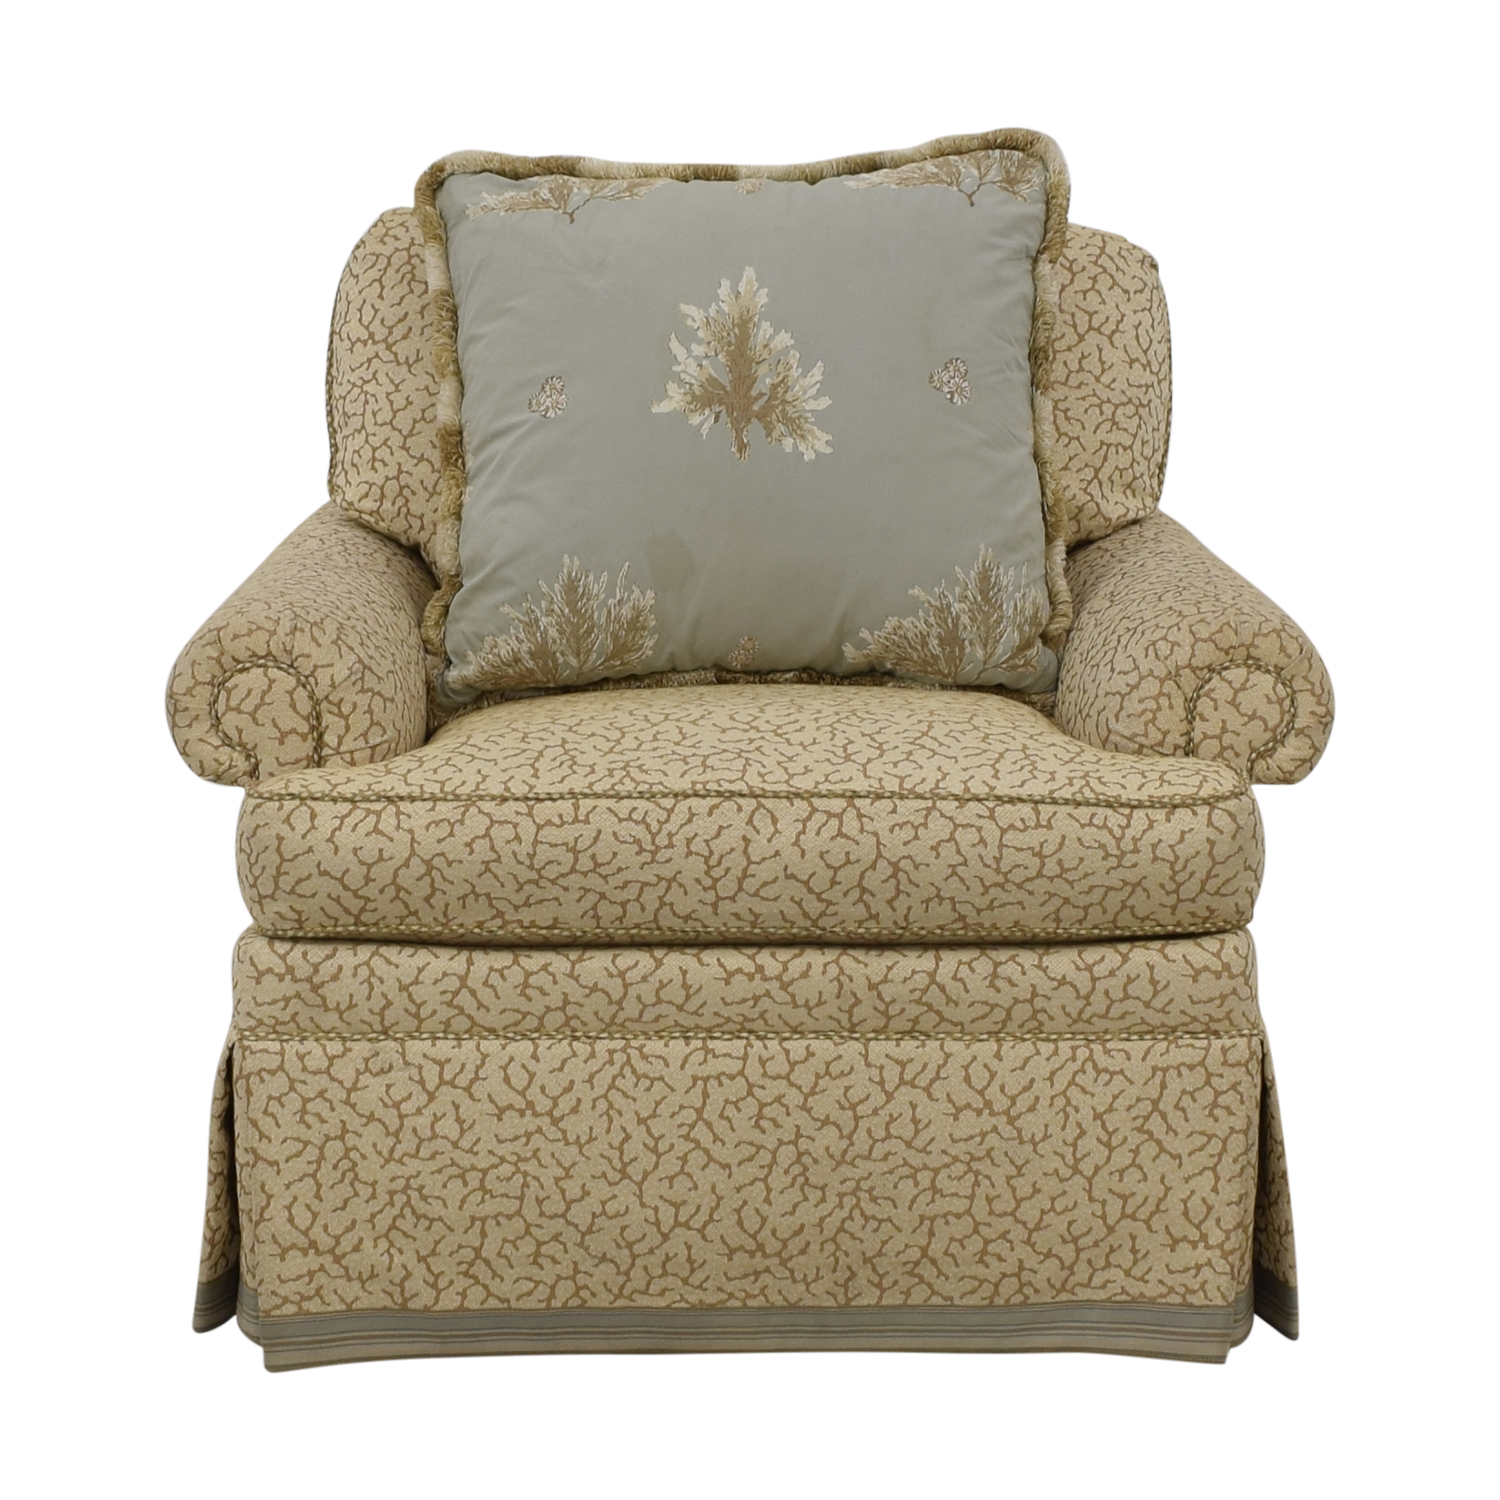 Charles Stewart Company Charles Stewart Company Accent Chair on sale